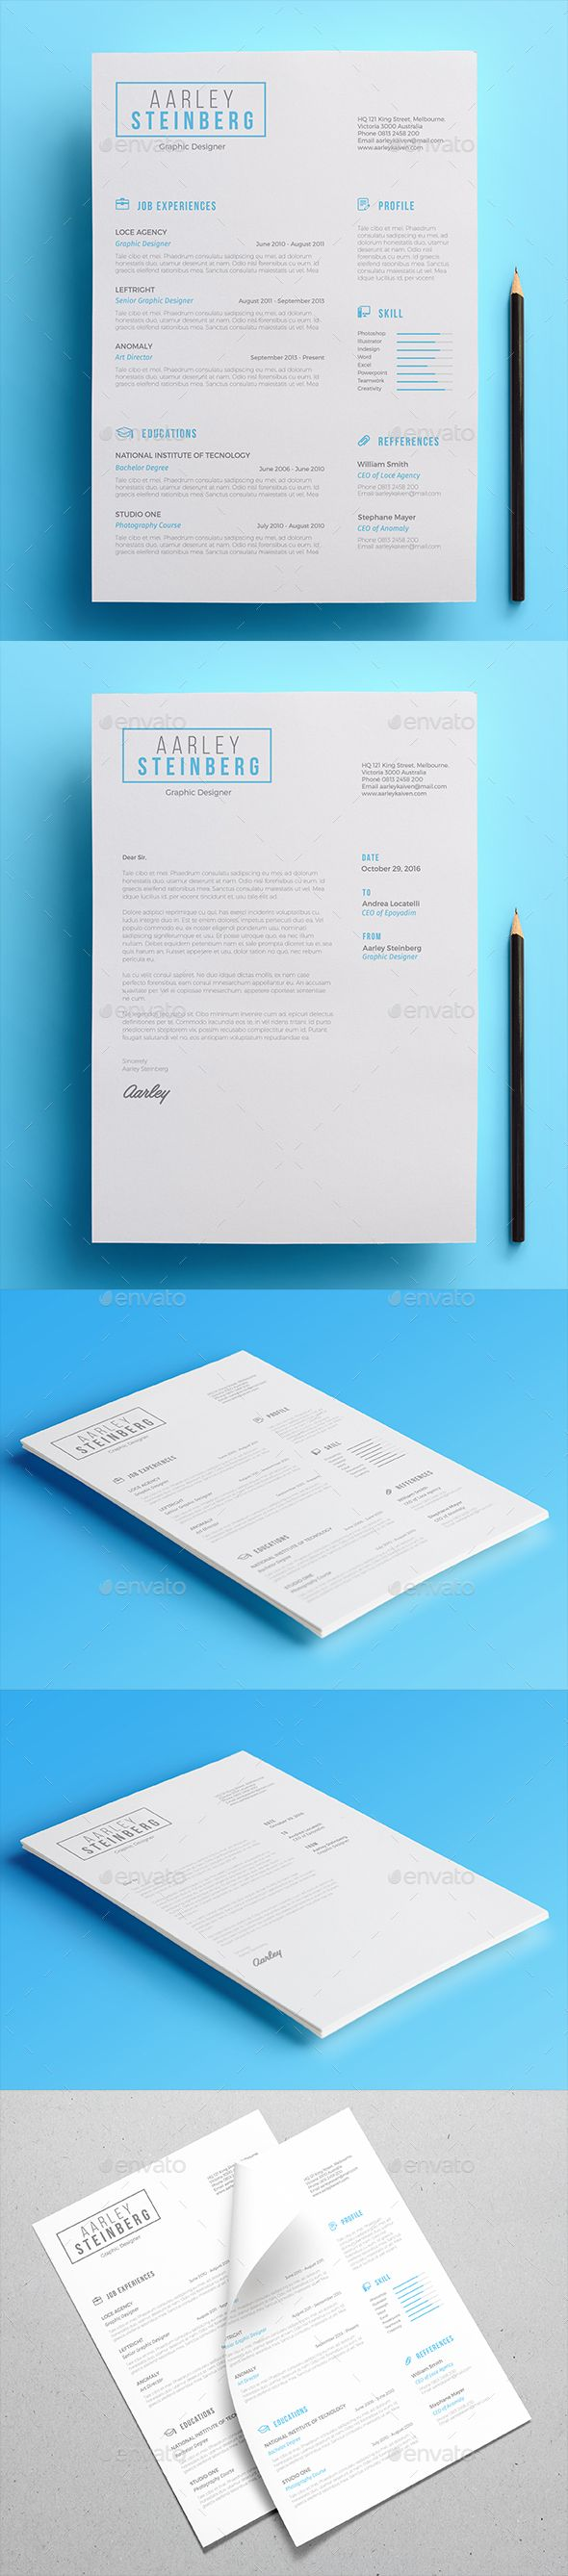 #Minimal #Resume 02 - Resumes #Stationery Download here: https://graphicriver.net/item/minimal-resume-02/18675708?ref=alena994